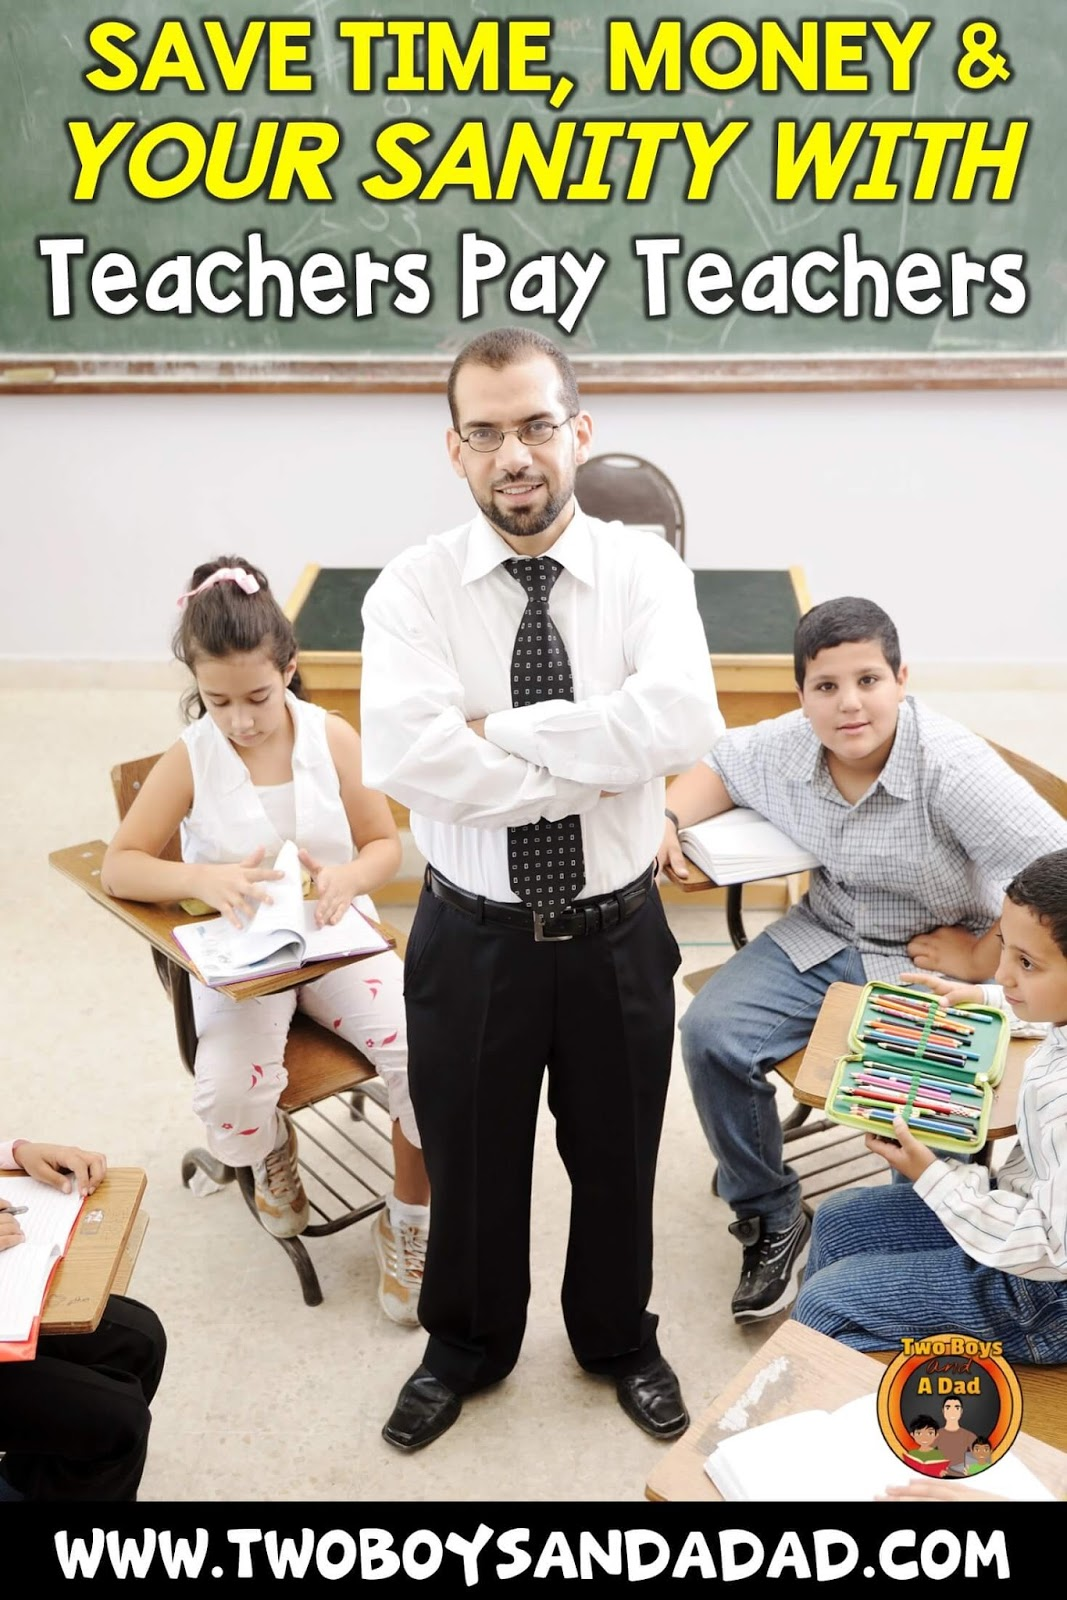 save time and money on Teachers Pay Teachers